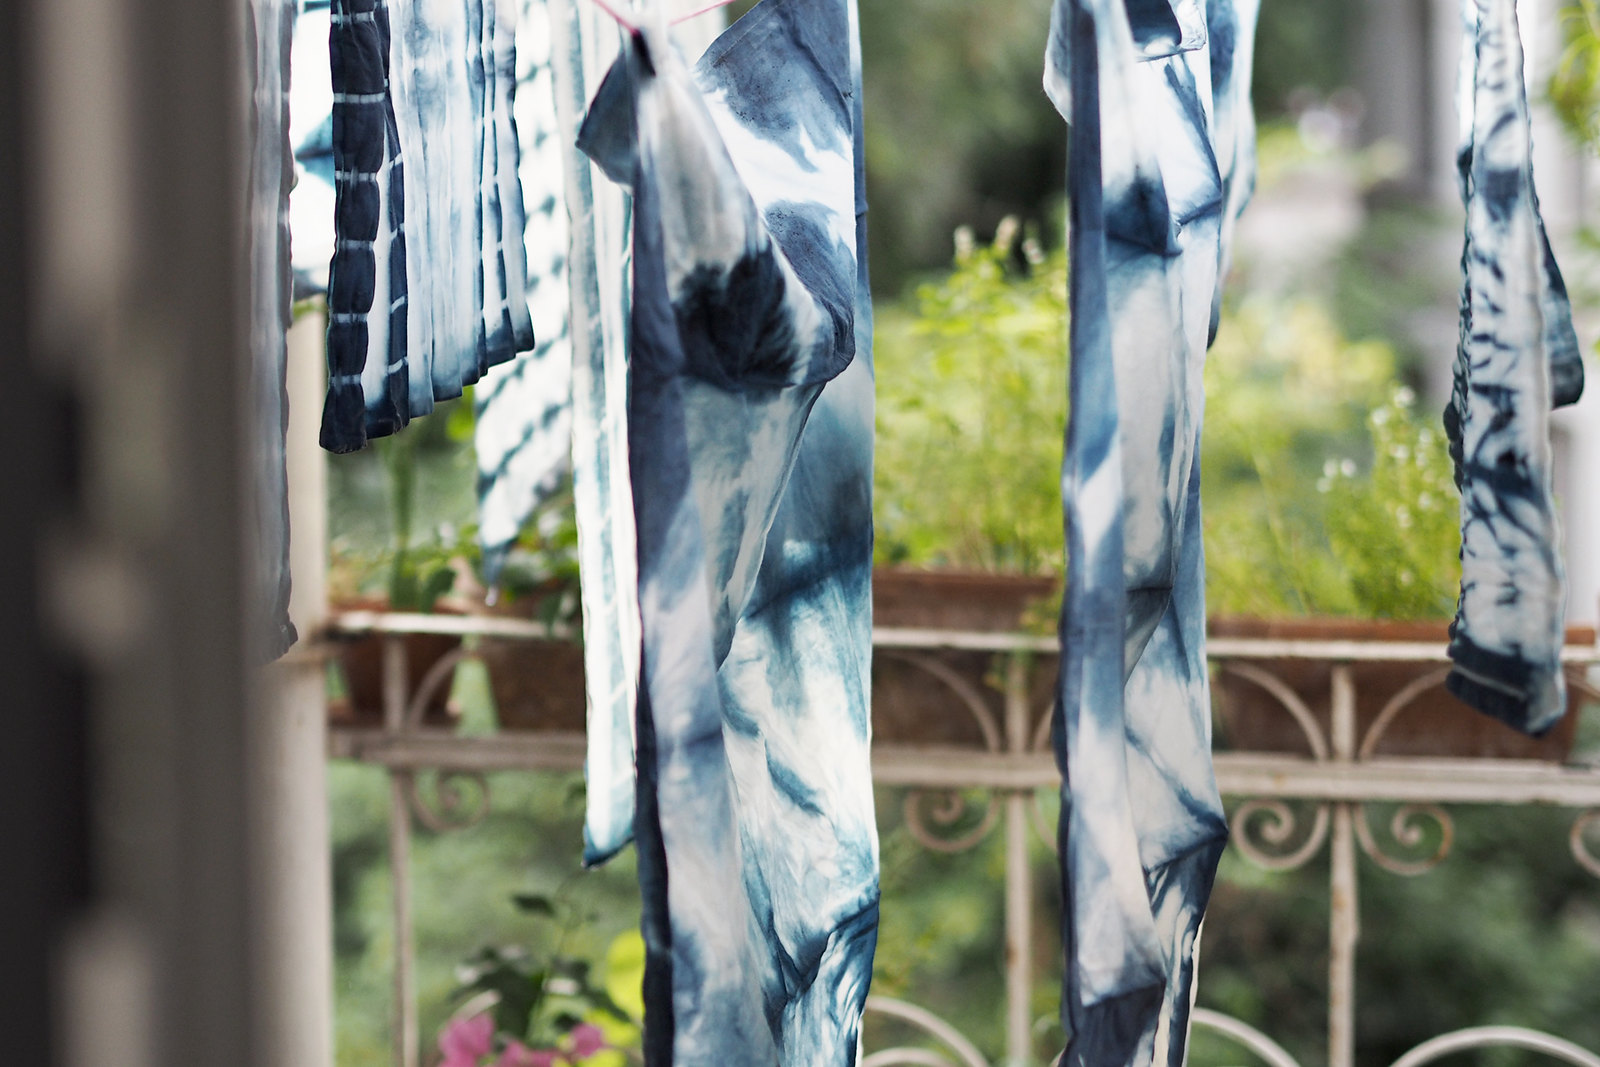 ranipink shibori workshop etsy hannover maroccan interior indigo blue dying process colouring clothes textiles diy how to lifestyle lifestyleblogger diyblogger cats & dogs fashion blog ricarda schernus 2